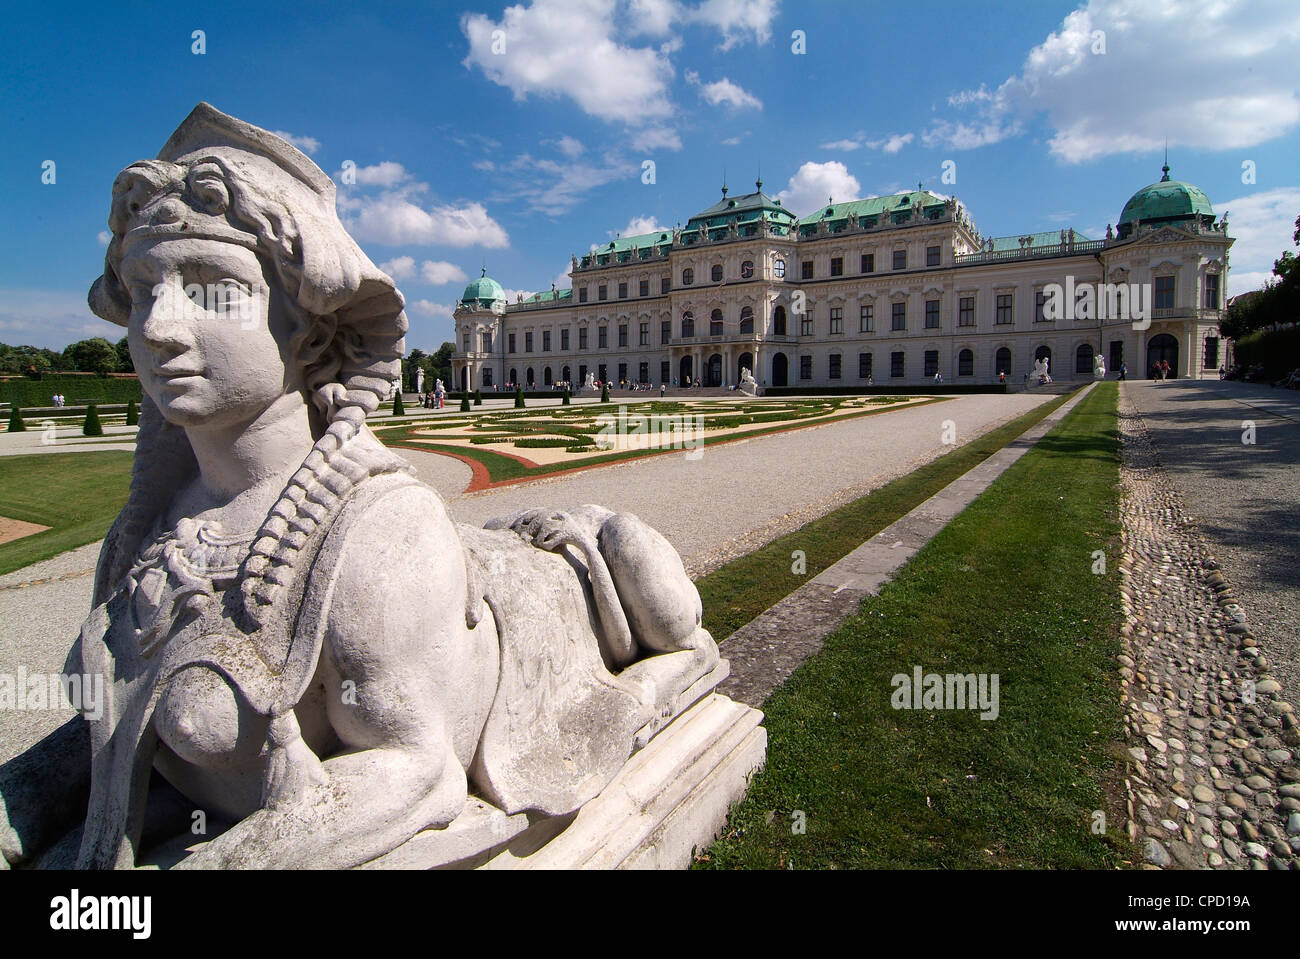 Belvedere Palace, UNESCO World Heritage Site, Vienna, Austria, Europe - Stock Image